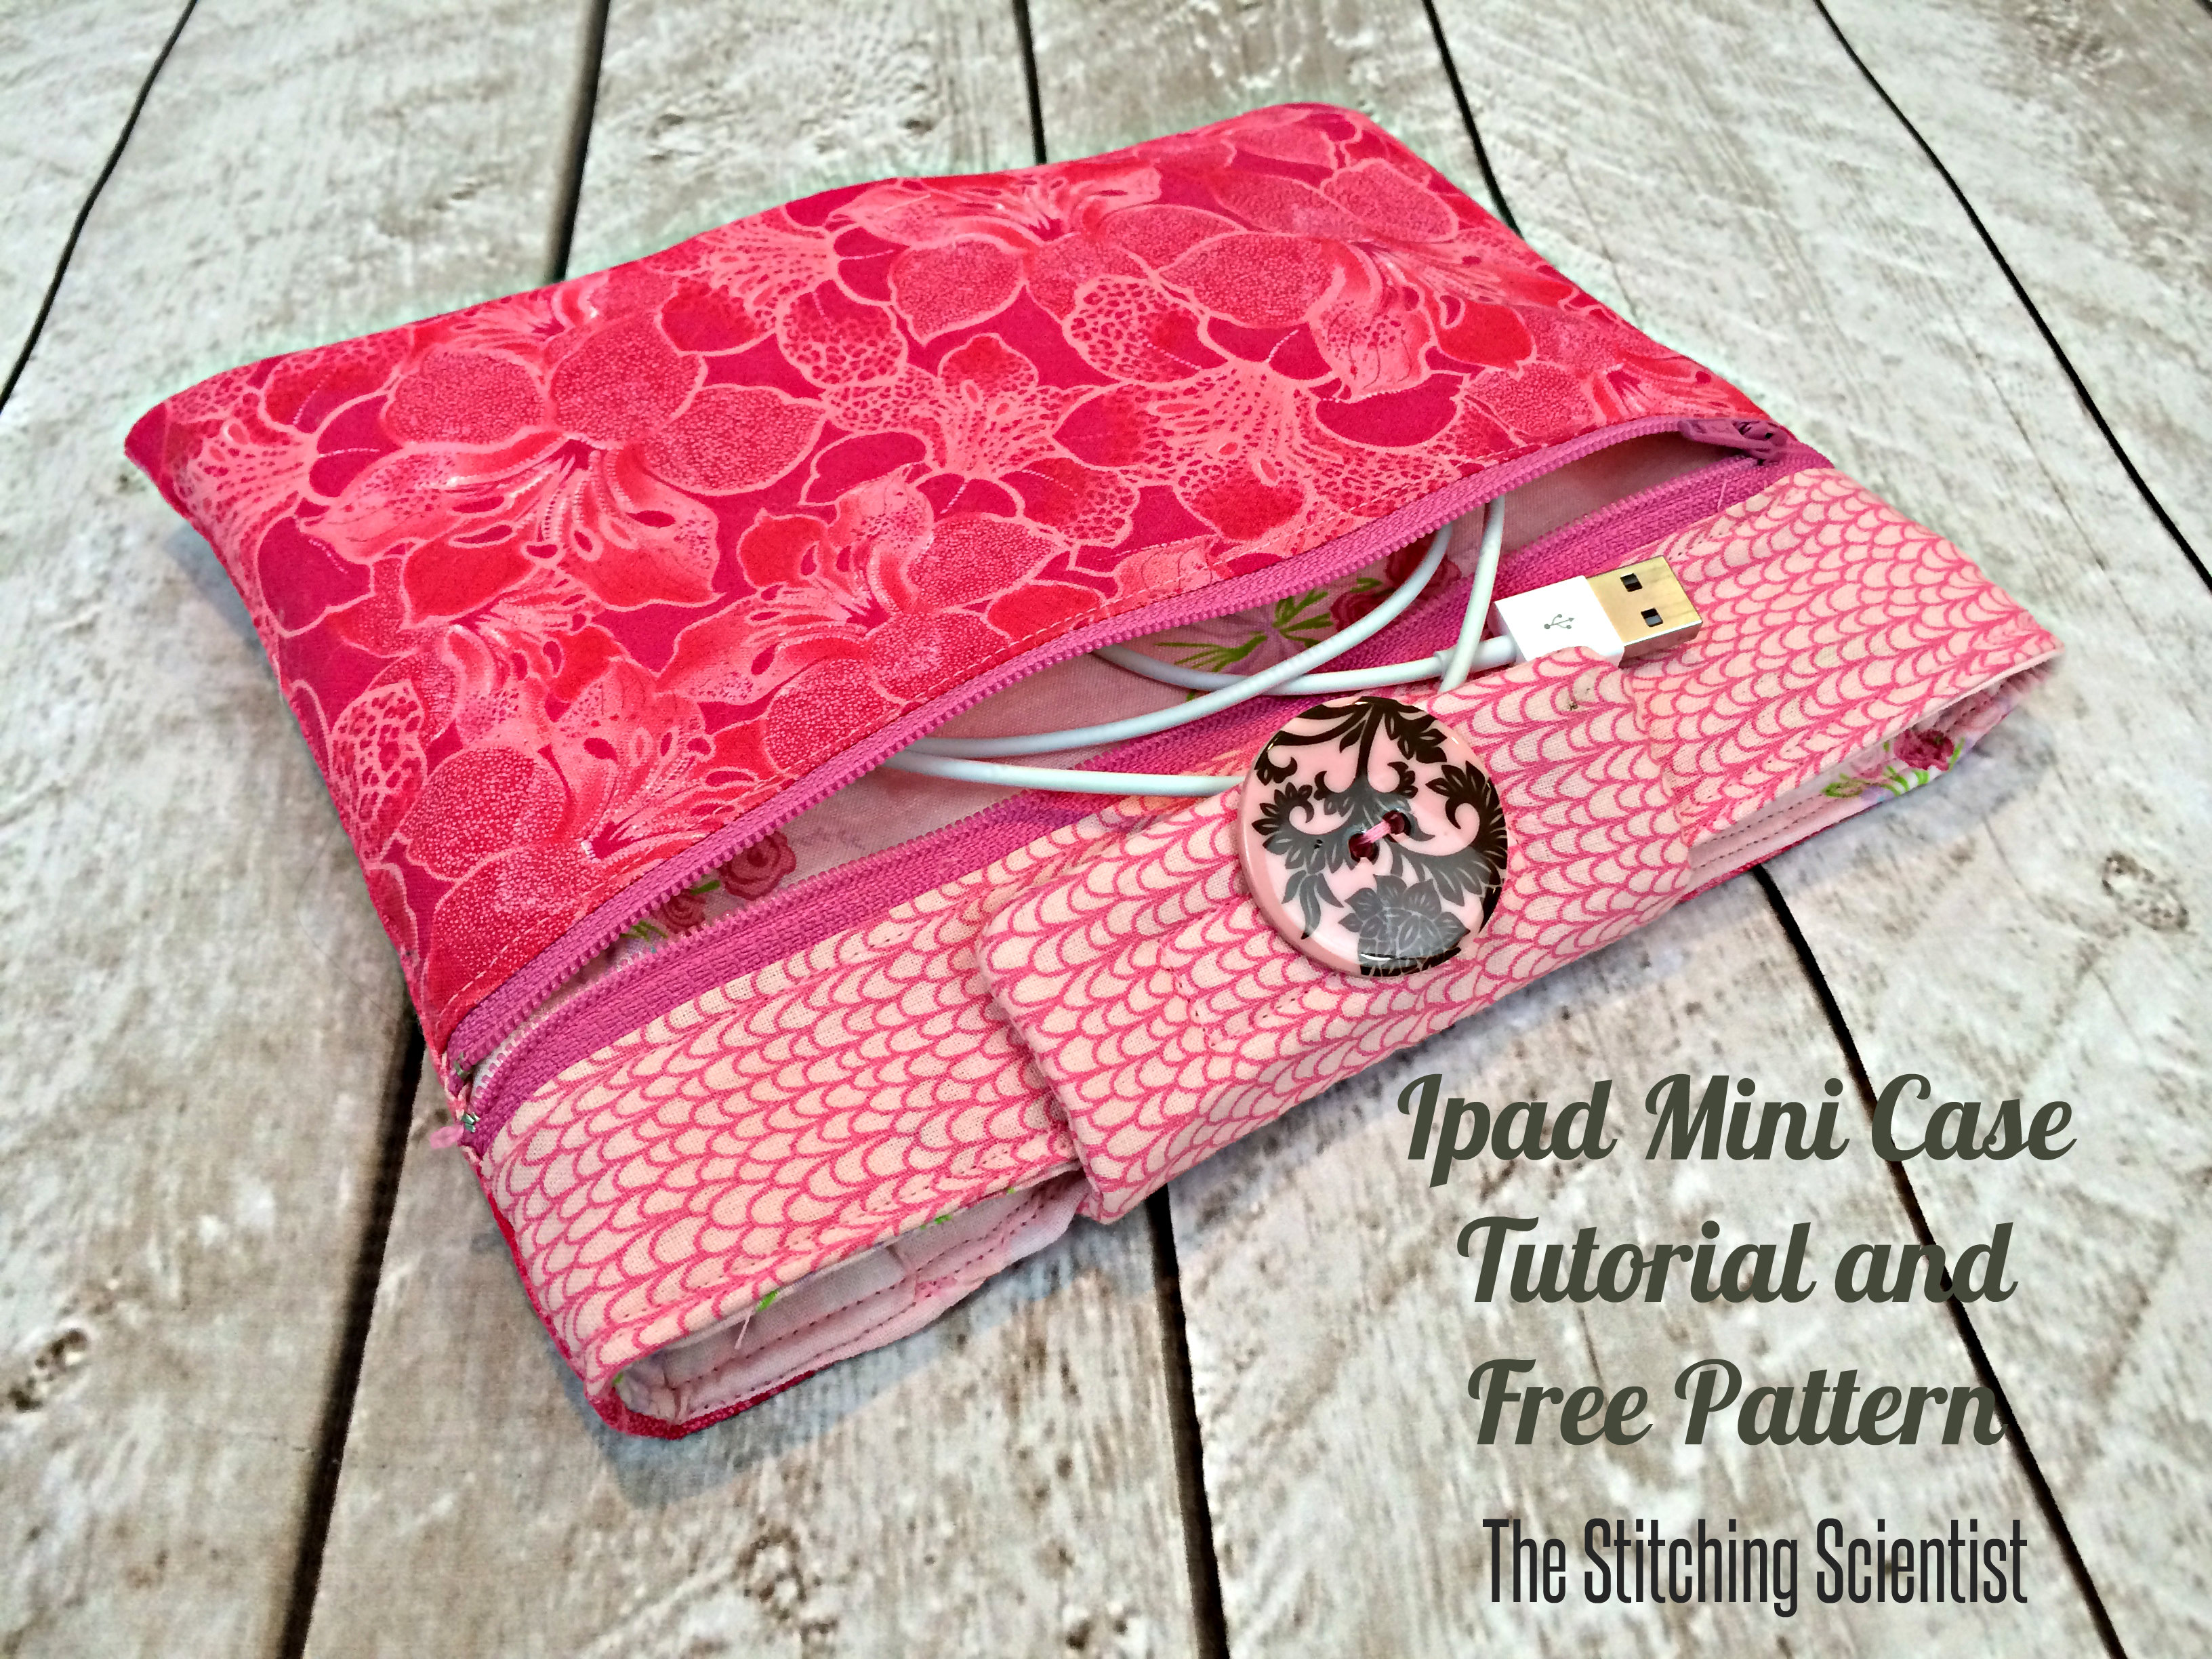 Ipad mini case tutorial with free pattern the stitching scientist for the ipad mini case you need baditri Image collections